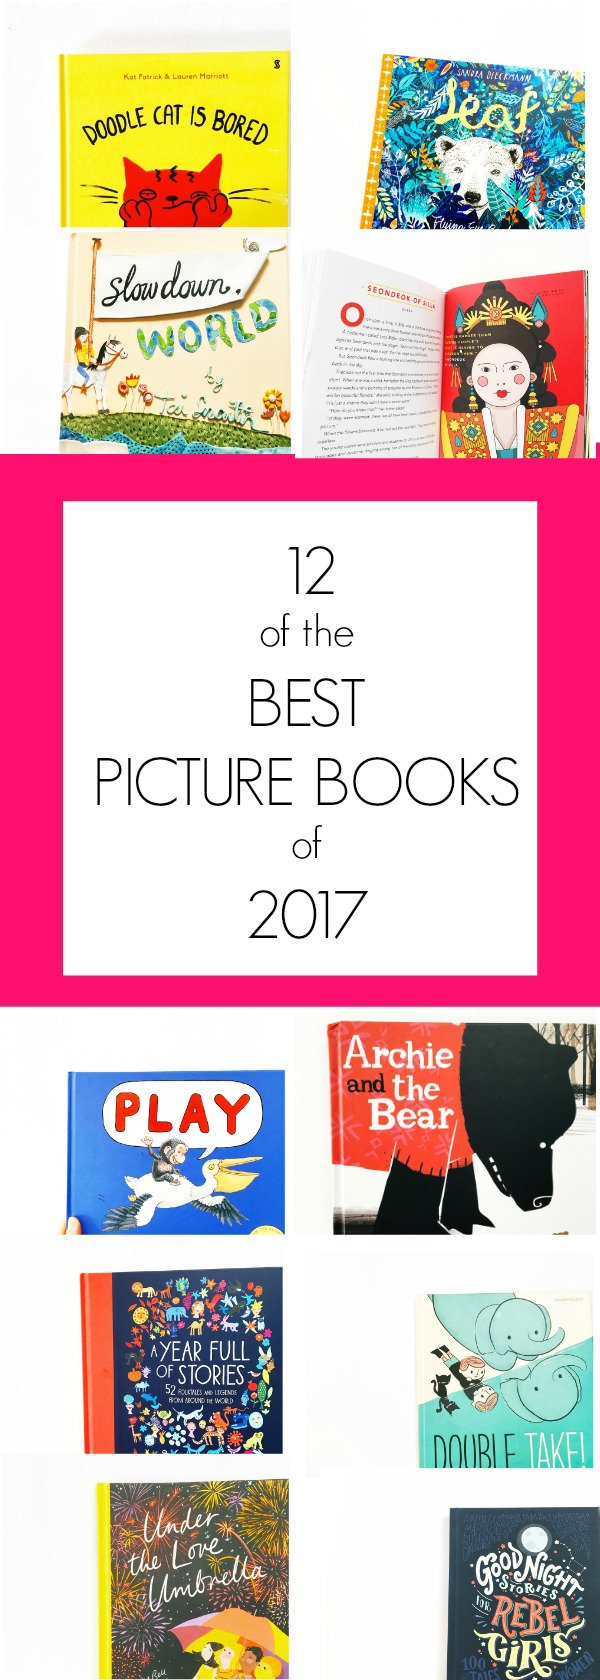 12 of the best picture books of 2017 (so far.) A round-up of some of our favourite picture books that have been published this year.